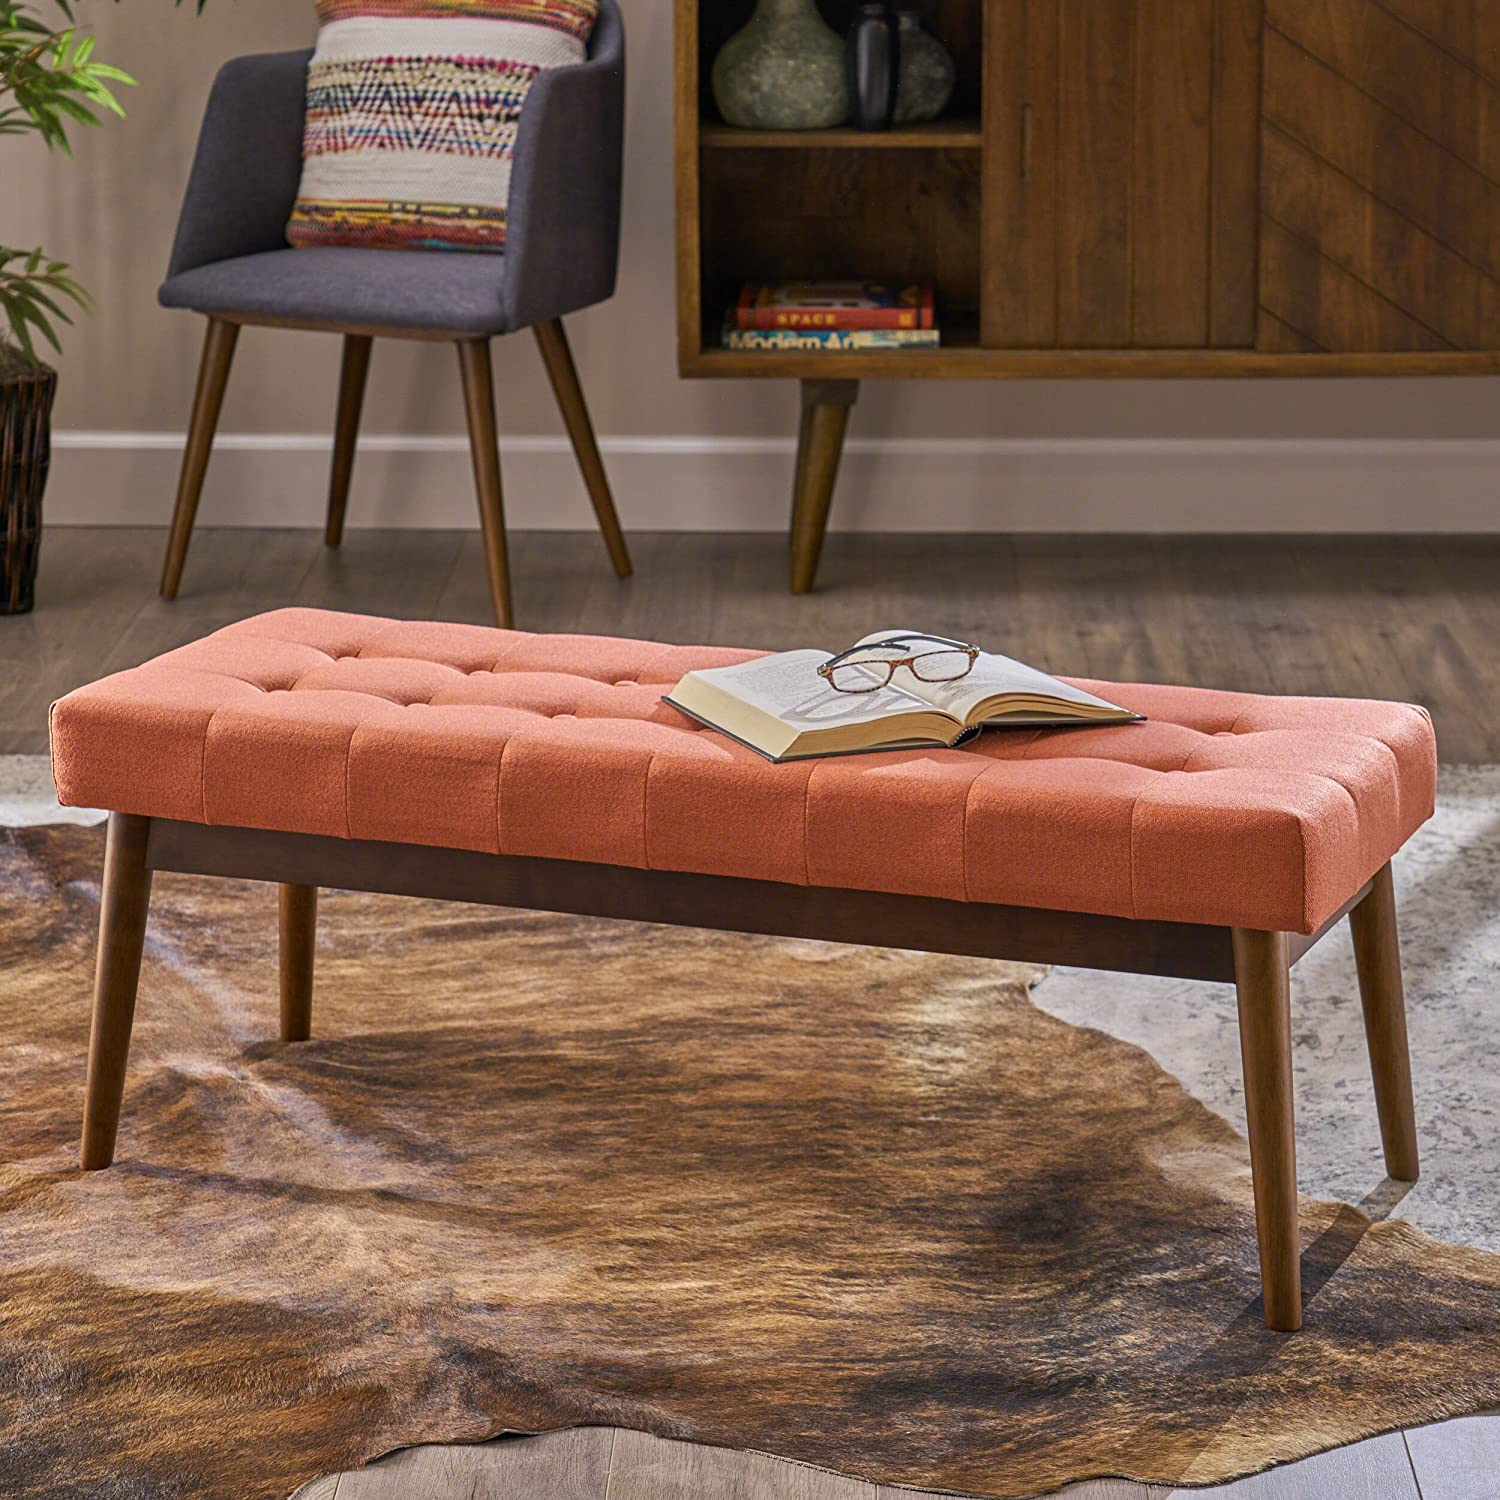 Groovy Christopher Knight Home Flora Mid Century Tufted Coral Fabric Ottoman Walnut Beatyapartments Chair Design Images Beatyapartmentscom